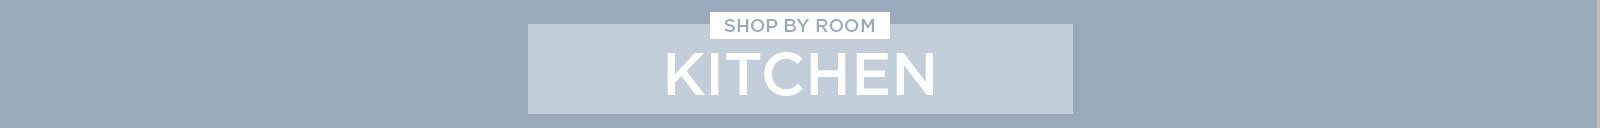 Shop By Room - Kitchen